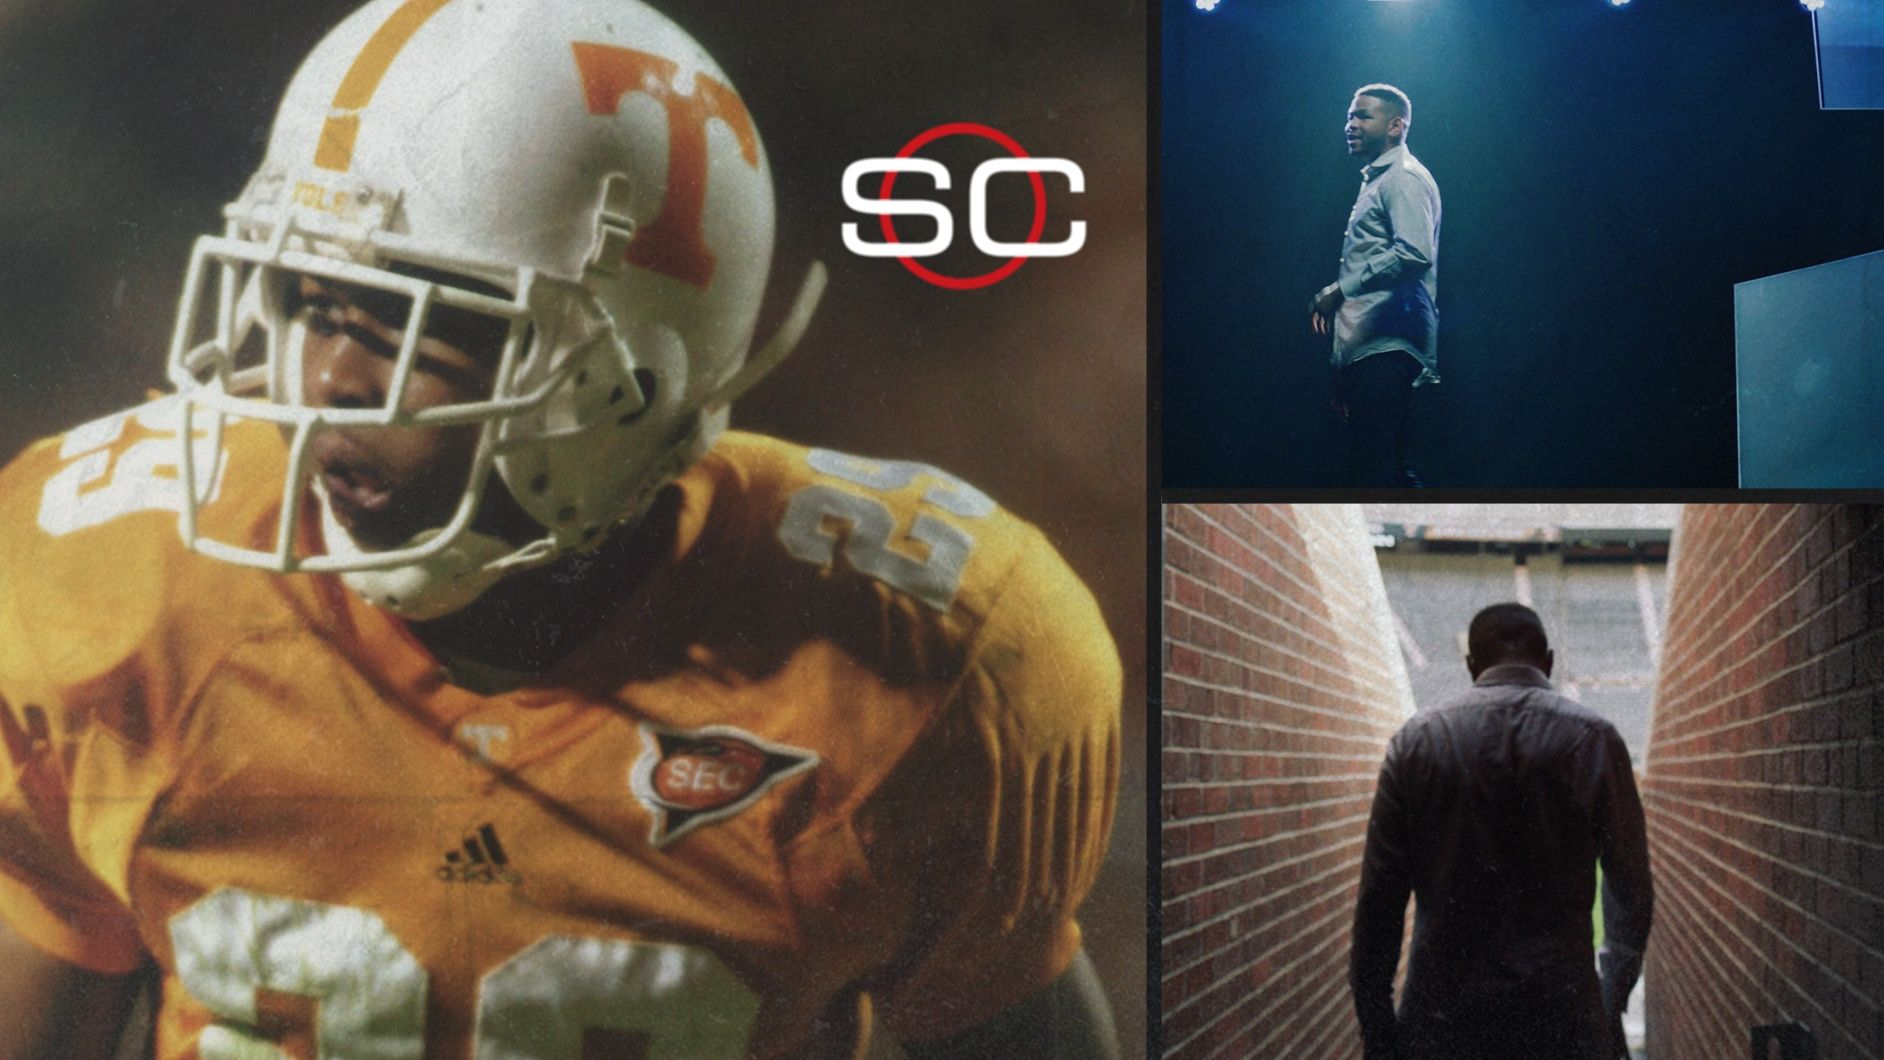 SC Featured: Tragedy didn't stop Vols' Inky Johnson